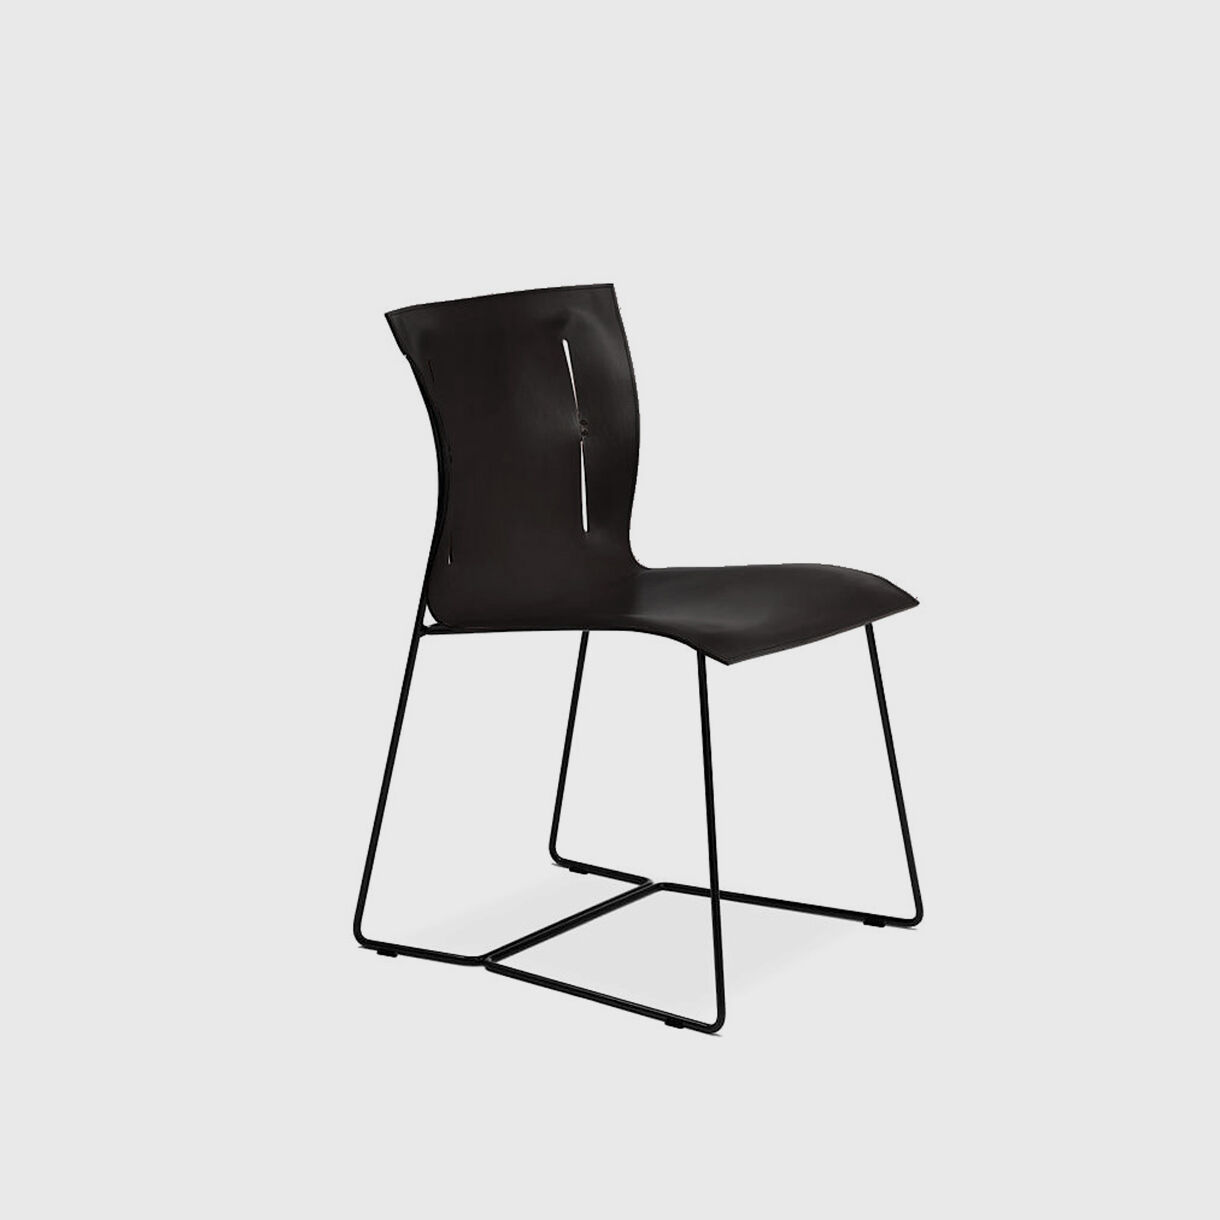 Cuoio Chair, Black Saddle Leather